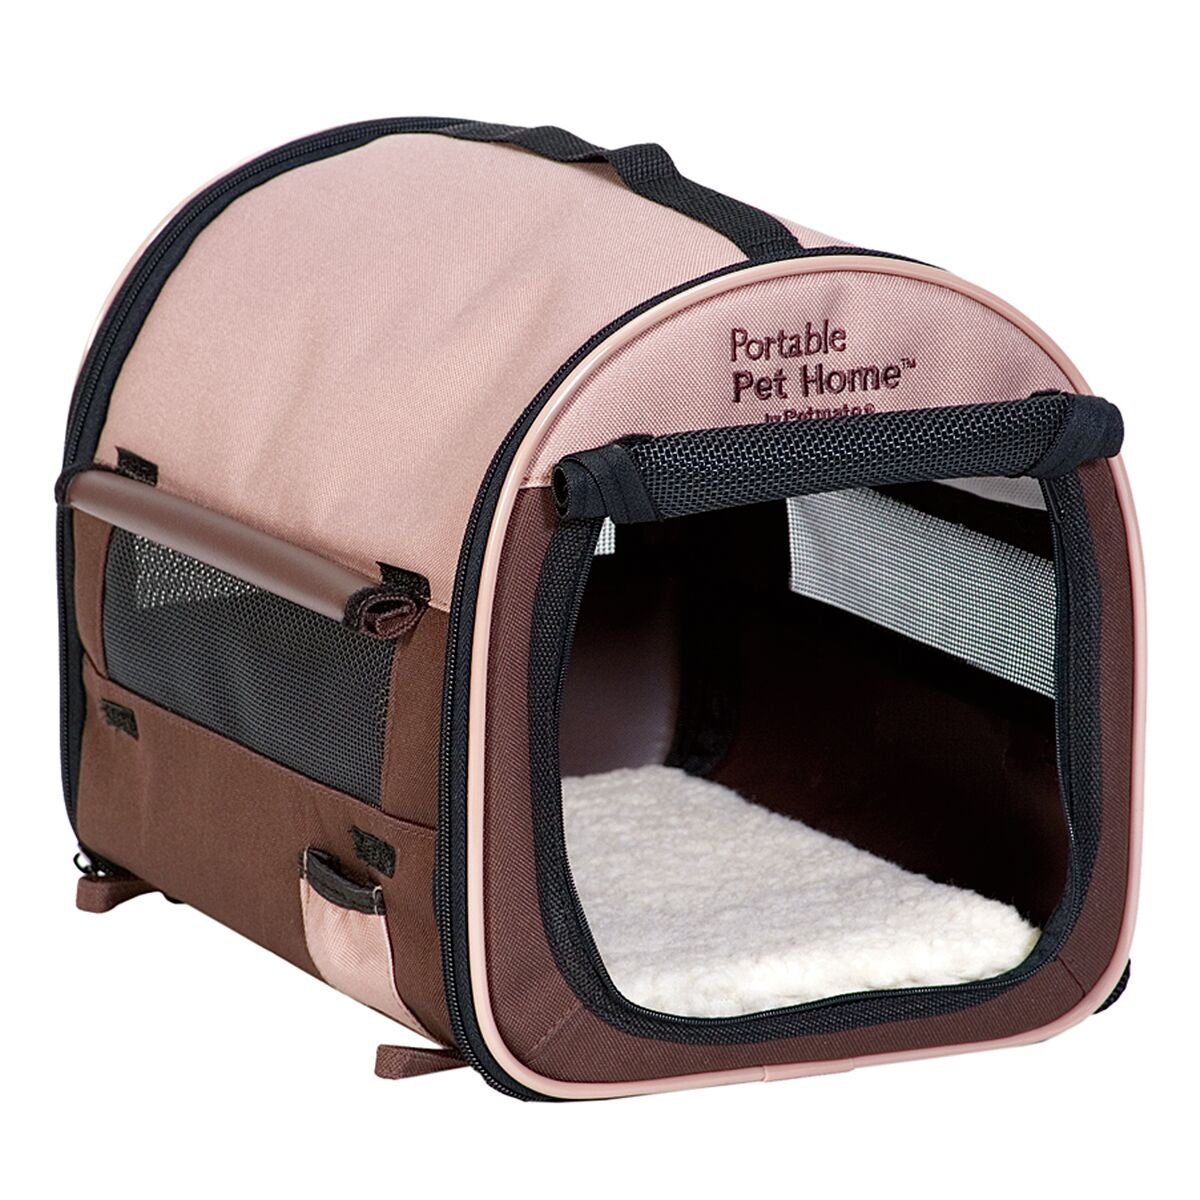 Portable Pet Home Soft Pet Carrier Size: Small (16